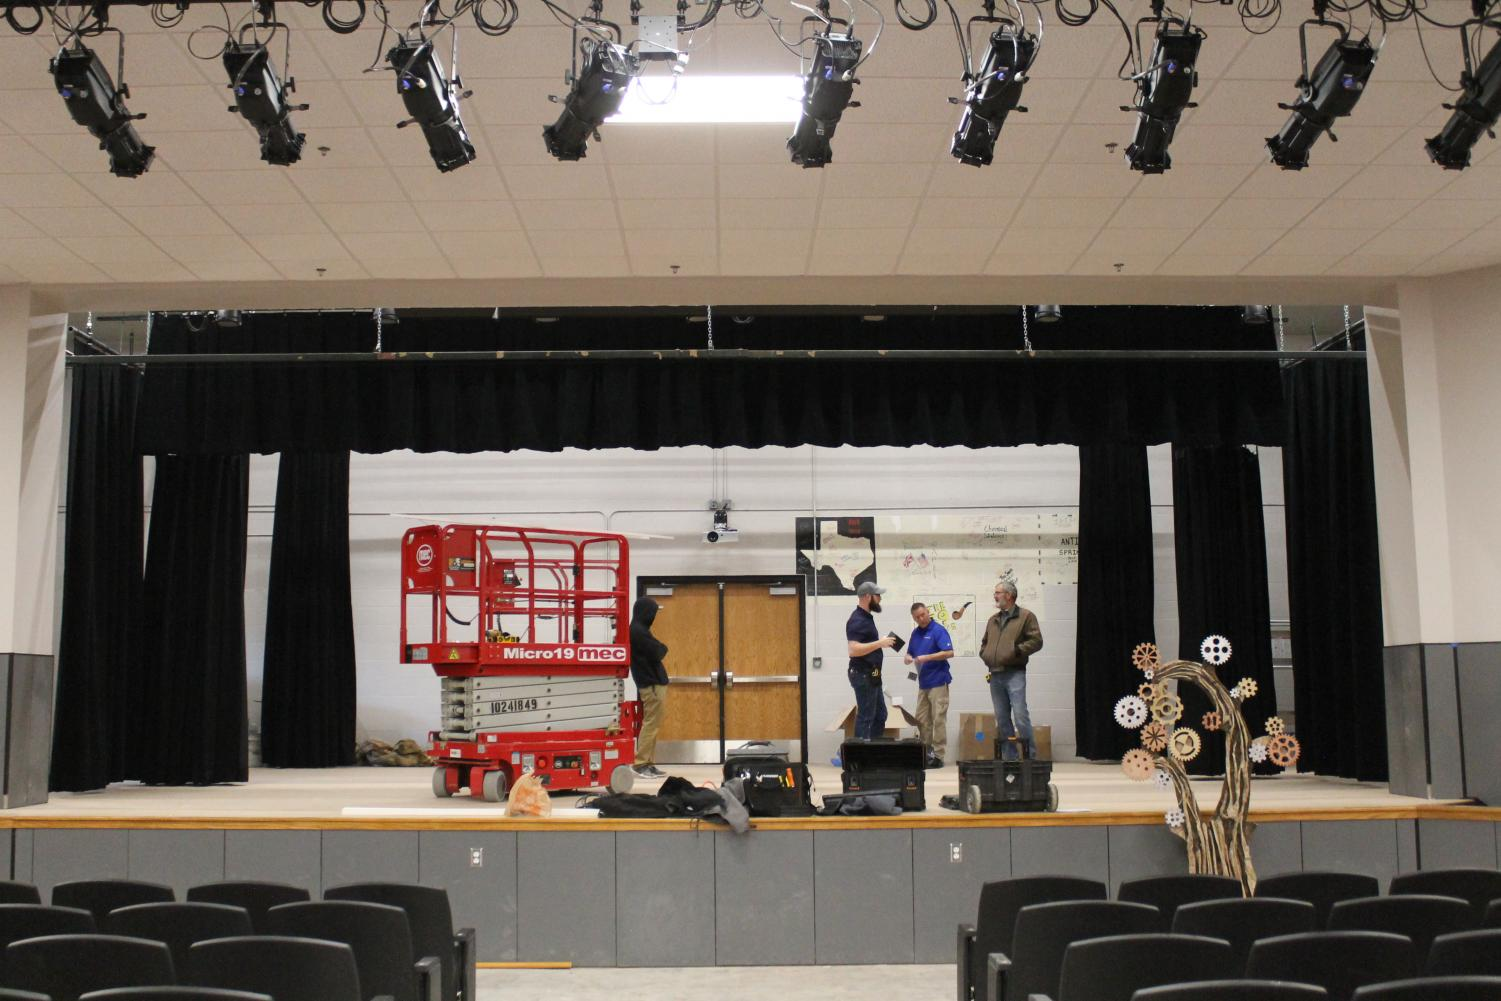 Construction+continues+in+the+new+auditorium.+The+brand+new+curtains+are+being+installed.+%22I+am+very+excited+for+the+new+curtains+in+the+auditorium%2C%22+said+sophomore+crew+member+Saffron+Eugea.